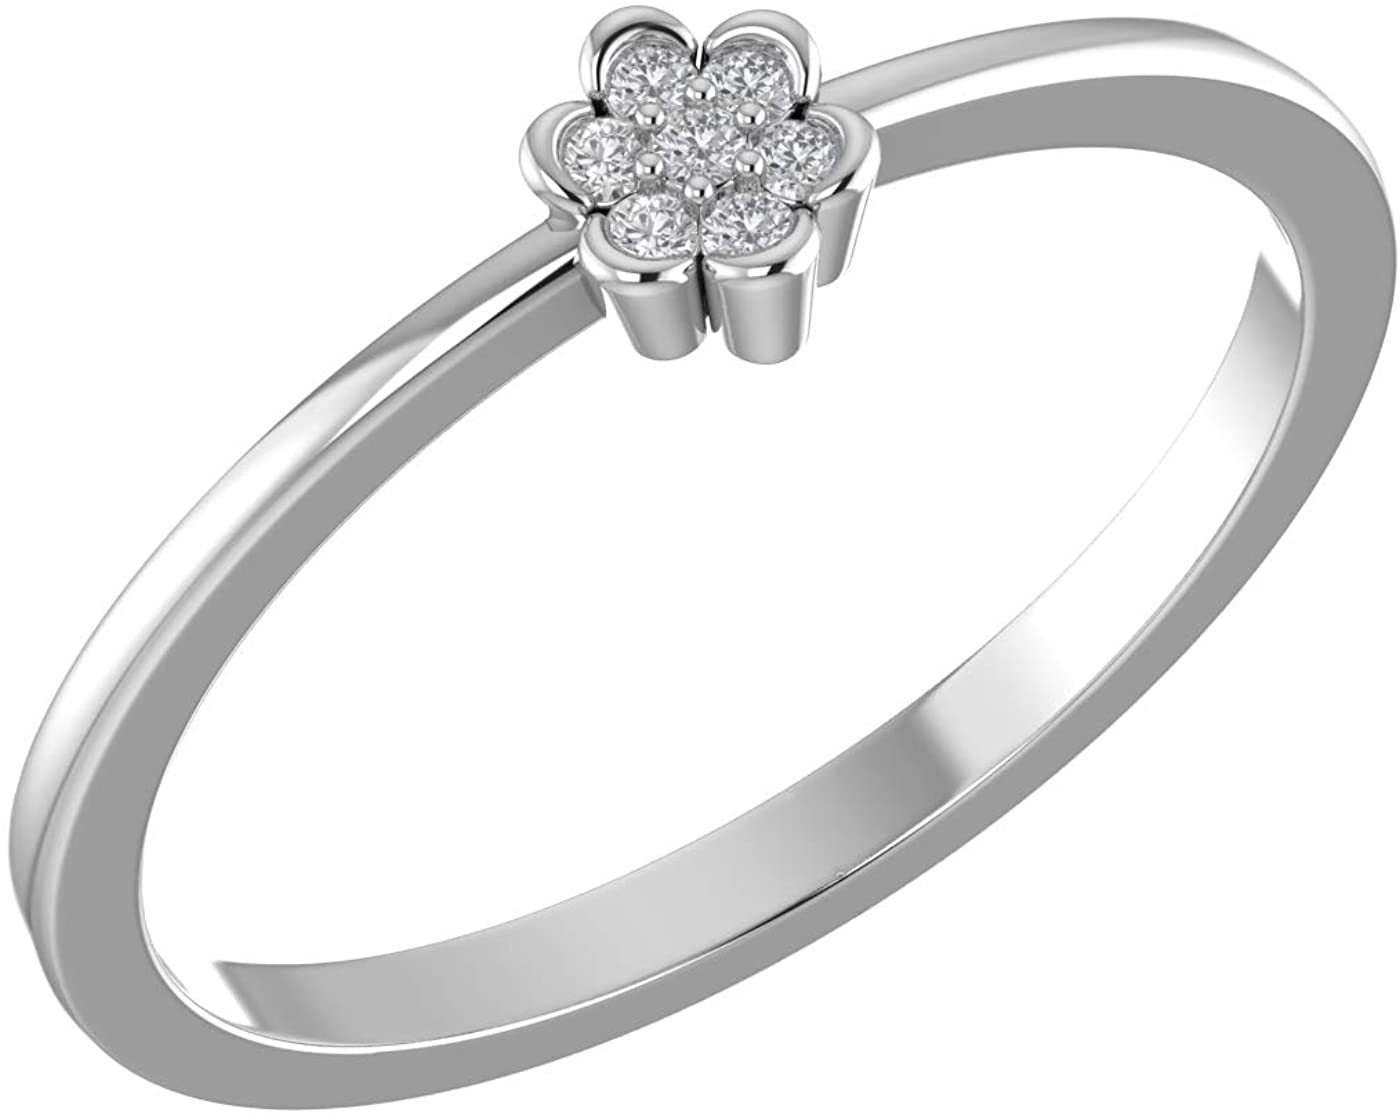 Amayra Diamond Ring 0.05 CTW-7 Natural Round Stones Set in 925 Sterling Silver- Brilliant Cut- Perfect for Bridal Promise Ring,Anniversary,Daily wear or Parties (Color-GH Clarity-VS-SI)